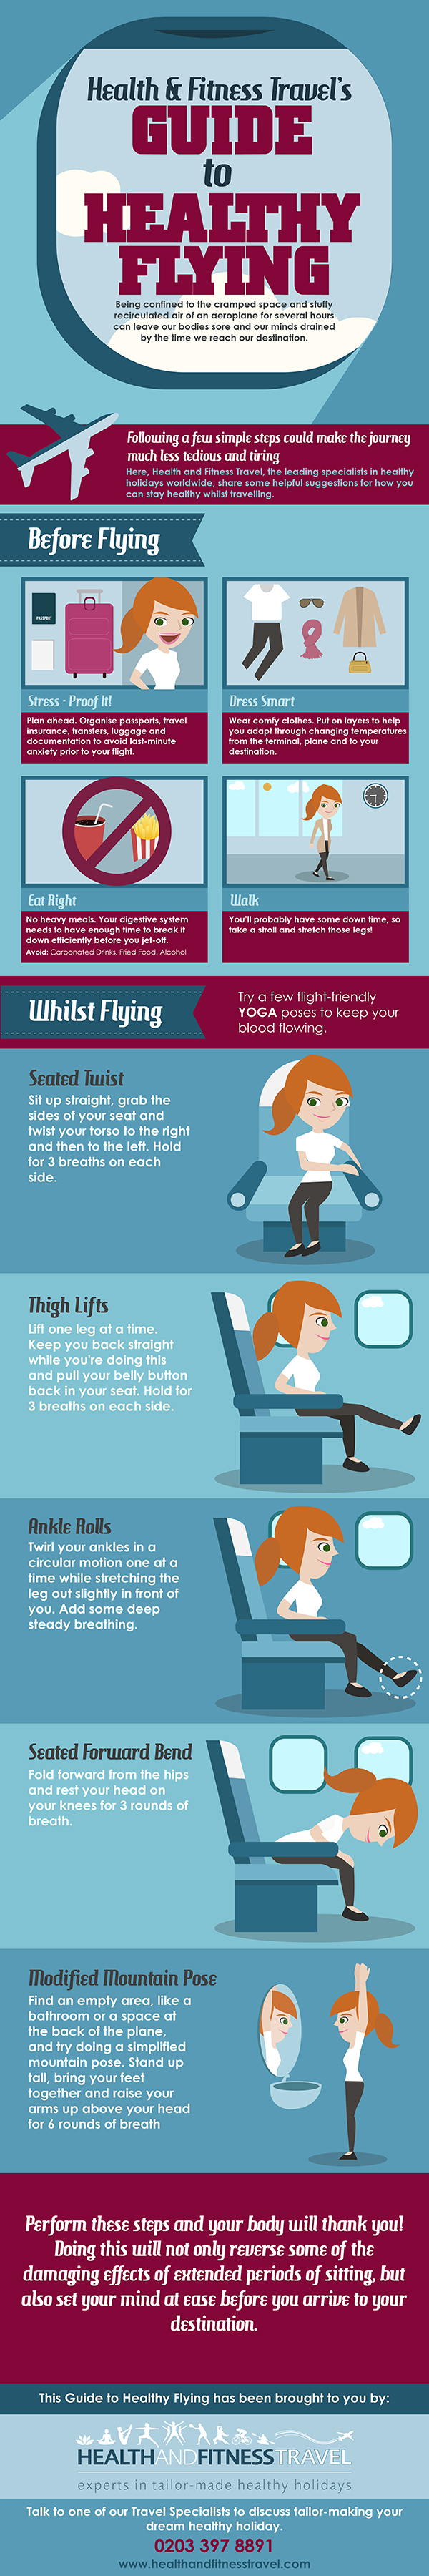 Healthy Flying Infographic